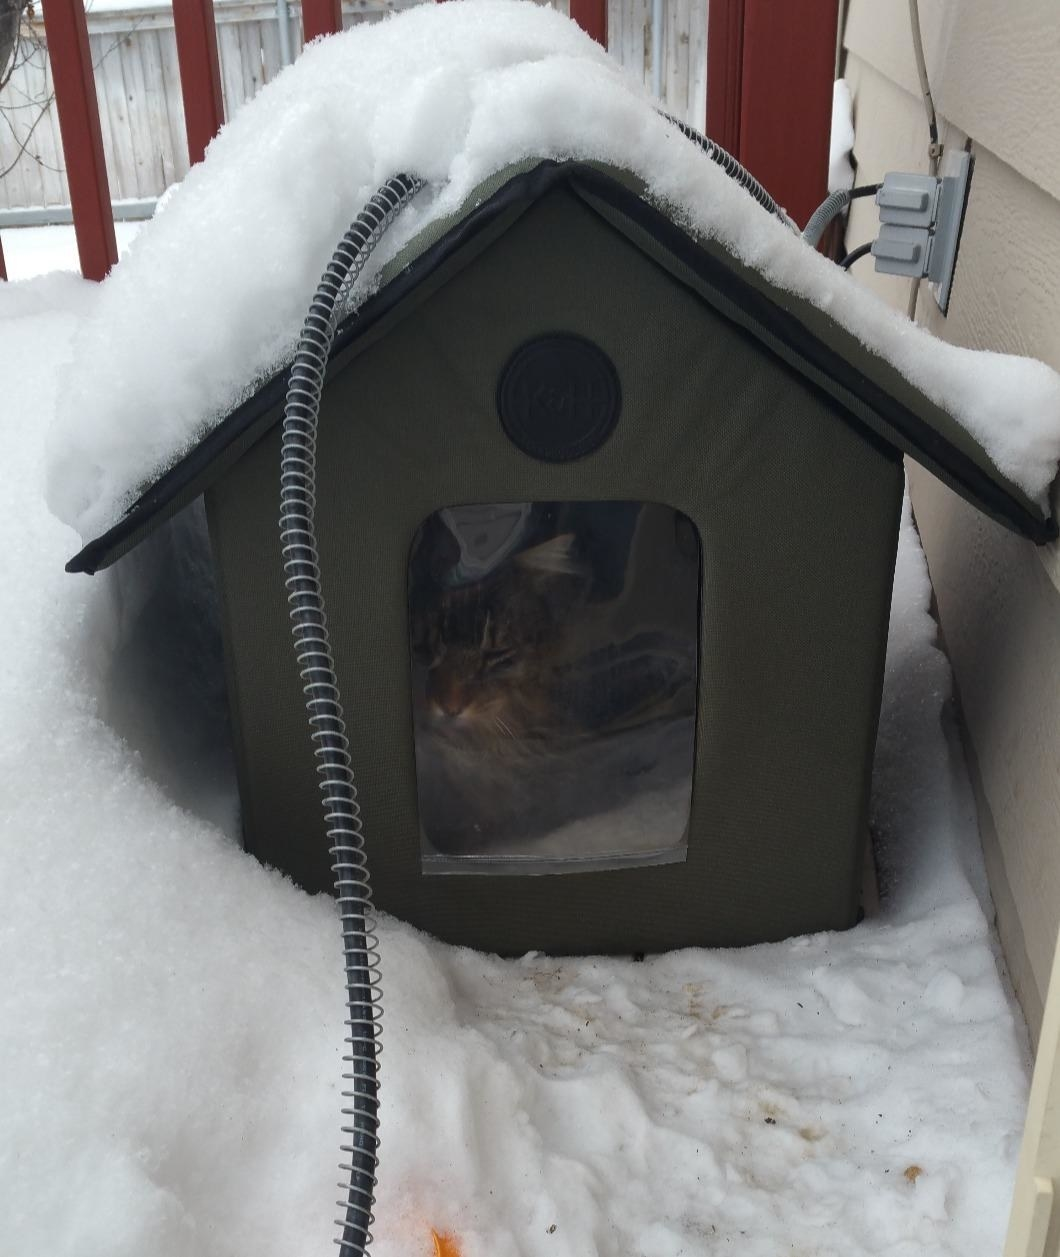 A cat in the house in the snow